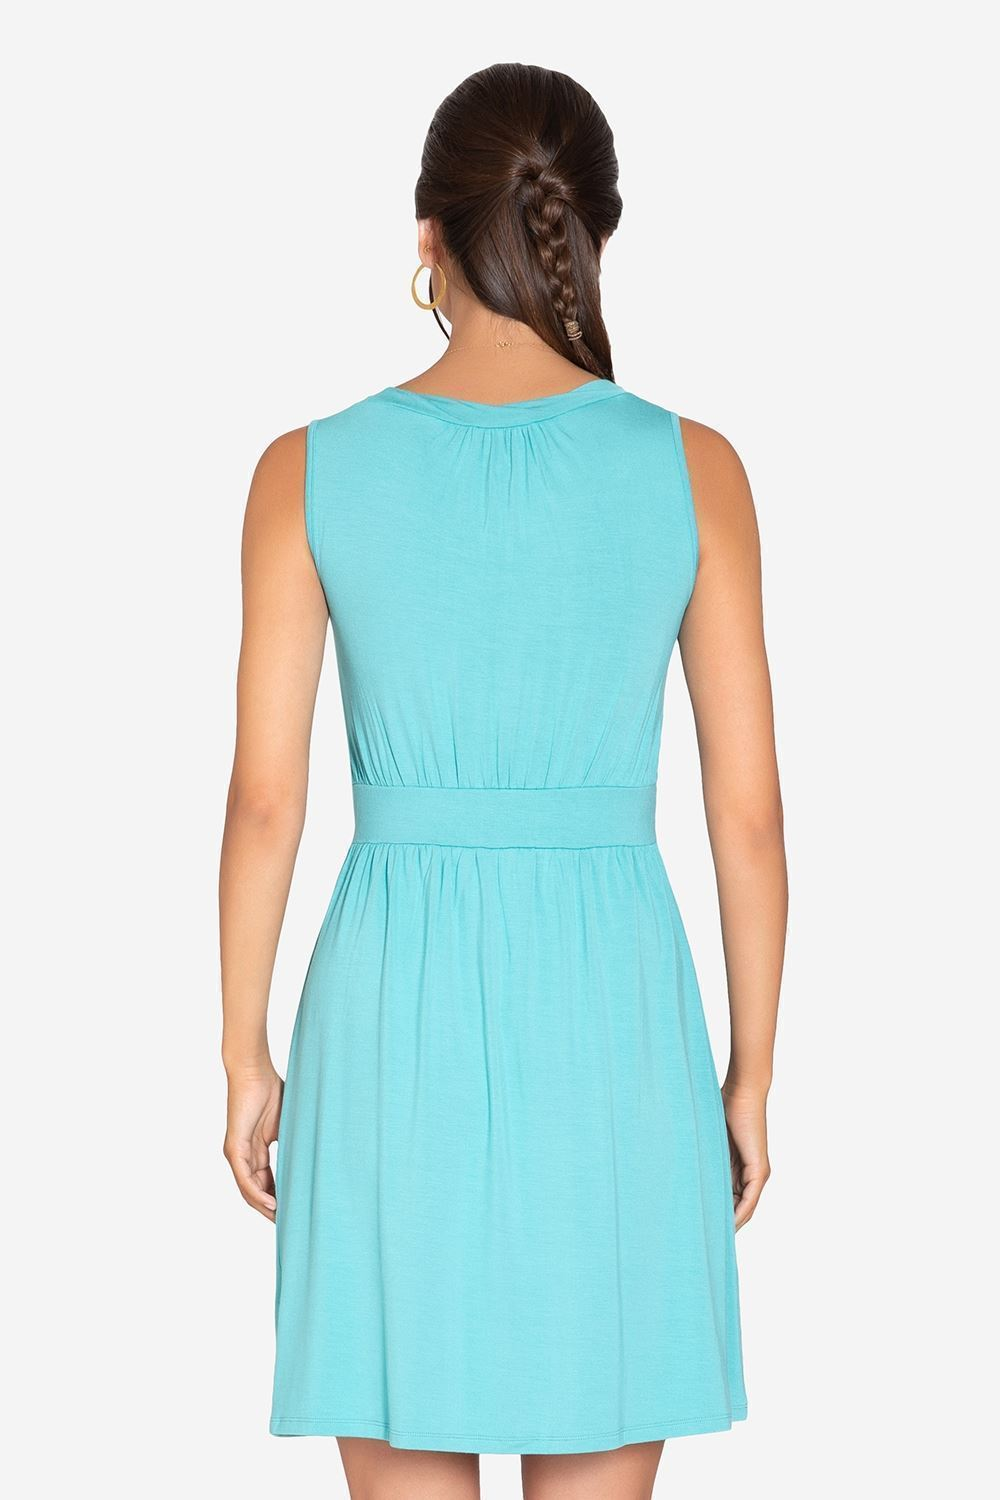 Turquoise Green sleeveless nursing dress – knee-length in bamboo fibers - seen from behind